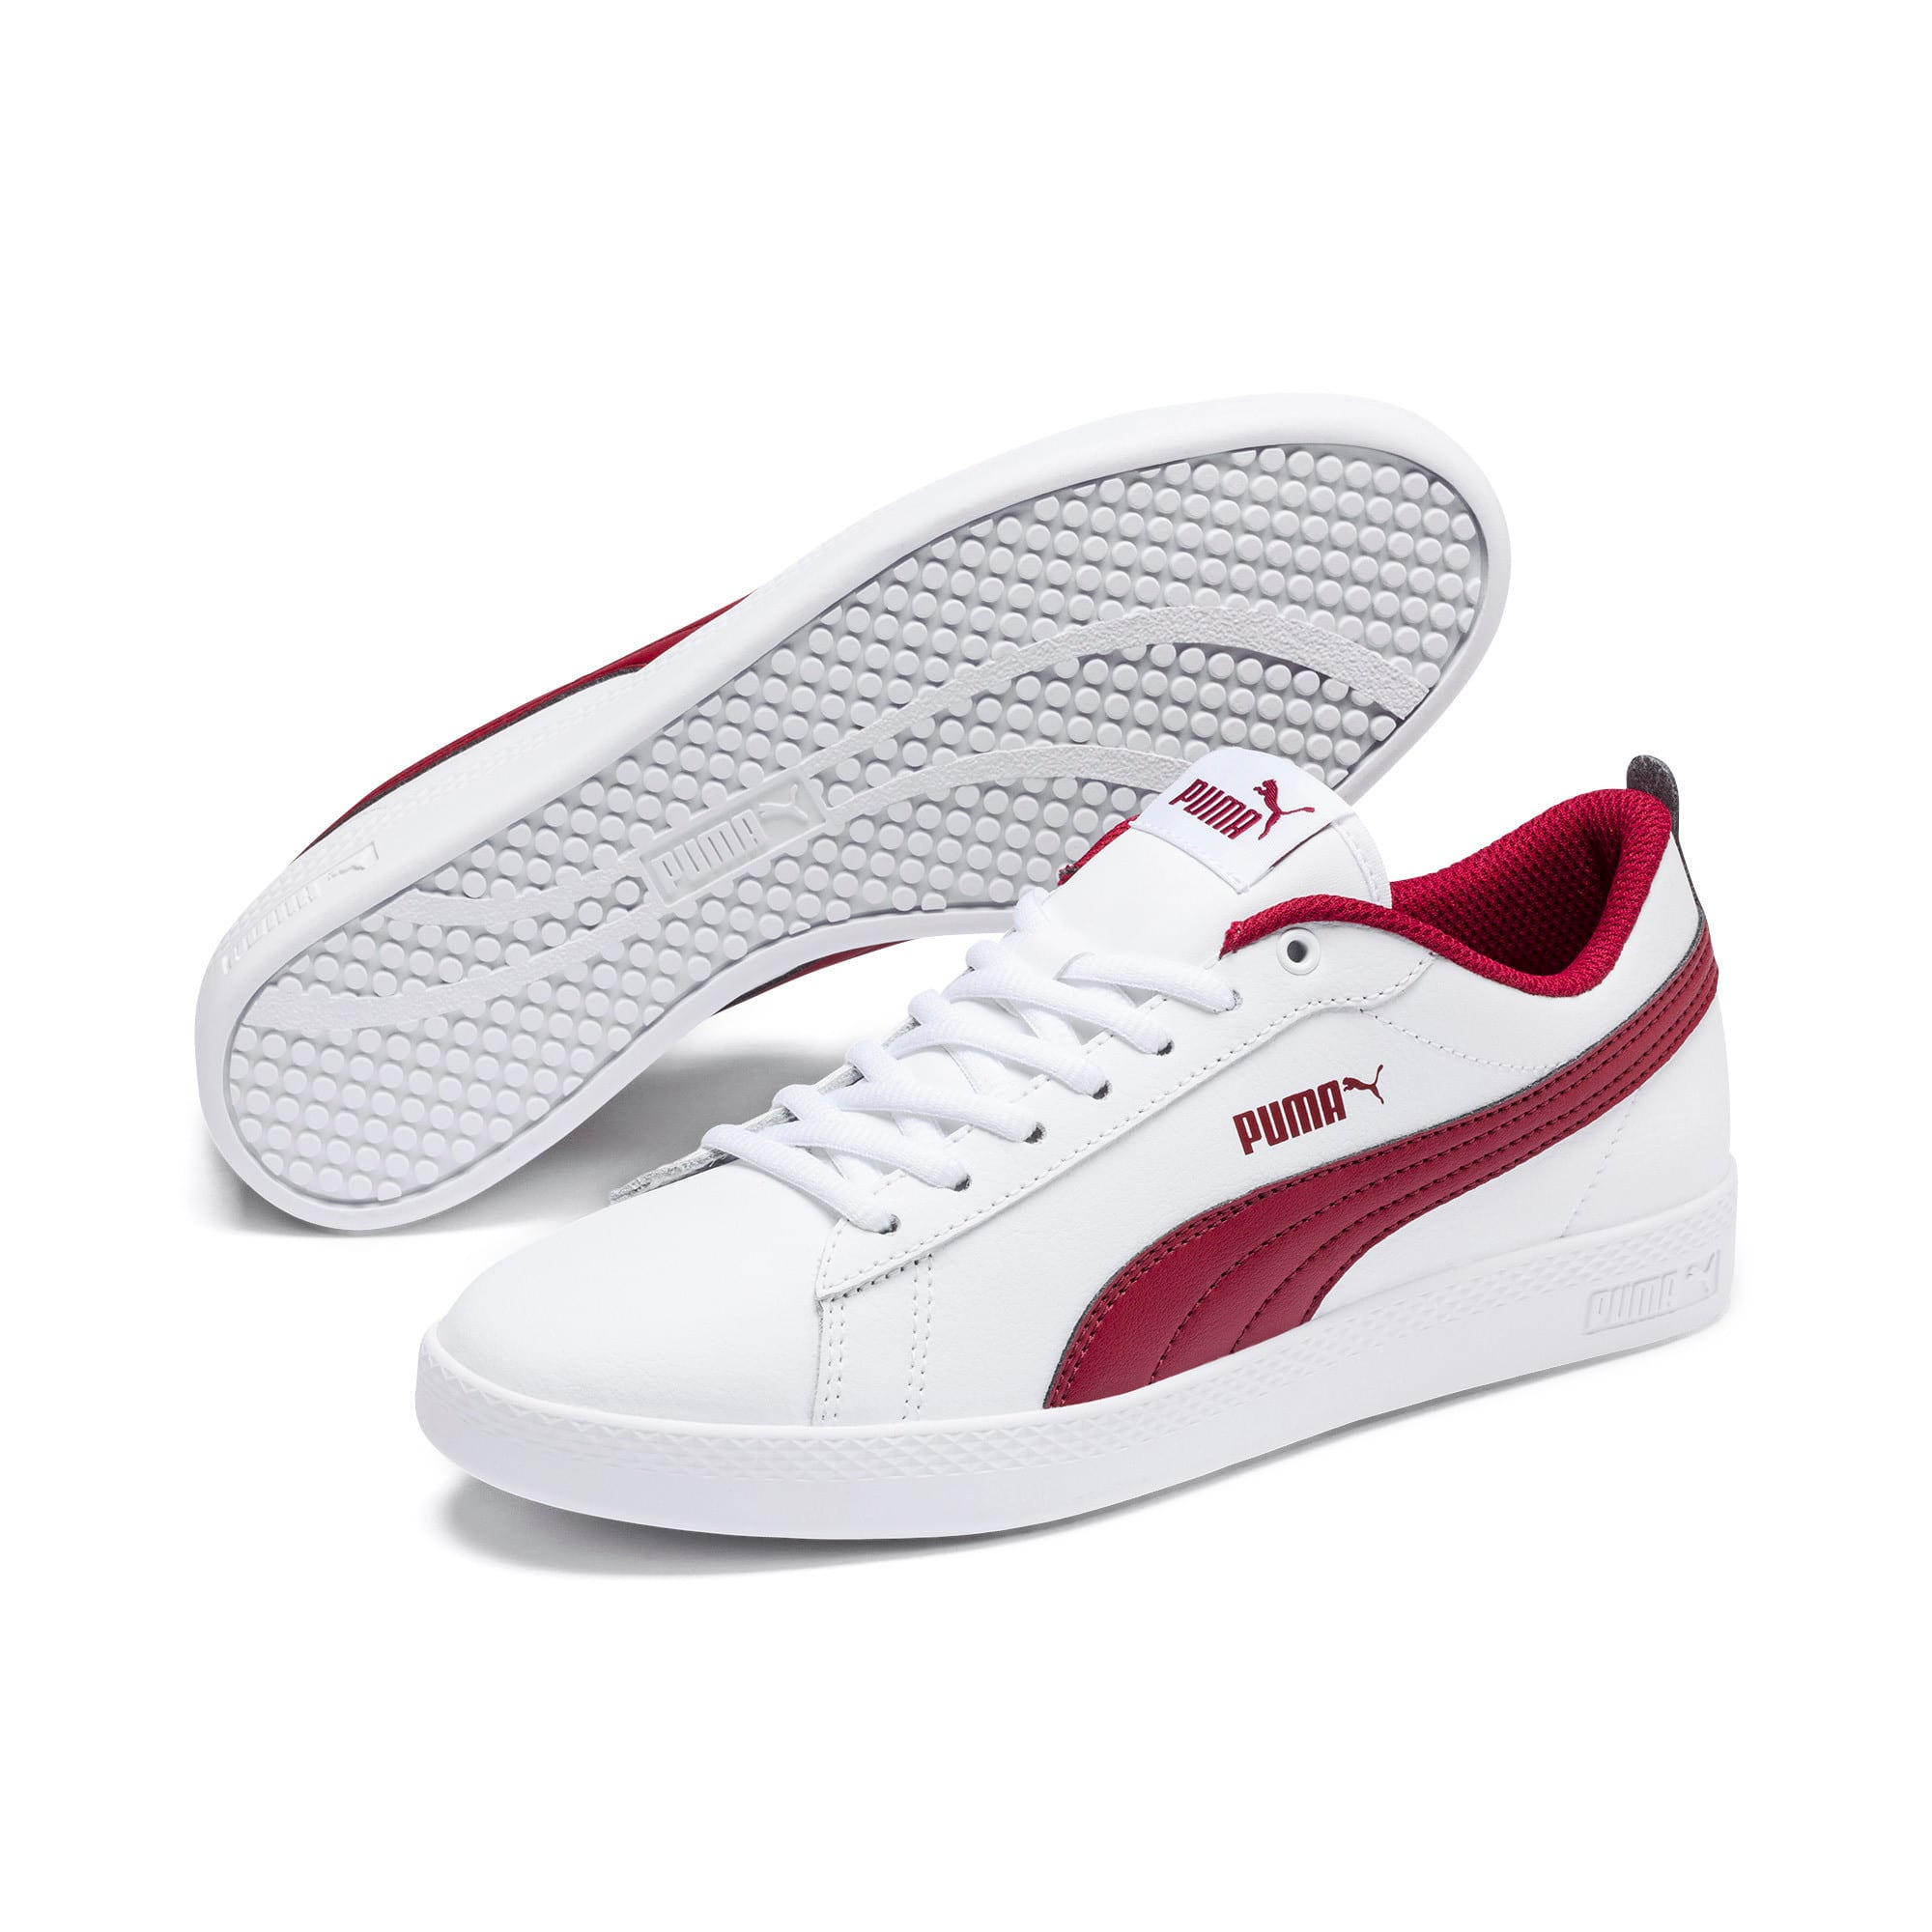 Thumbnail 3 of Basket en cuir Smash v2 pour femme, Puma White-Rhubarb, medium